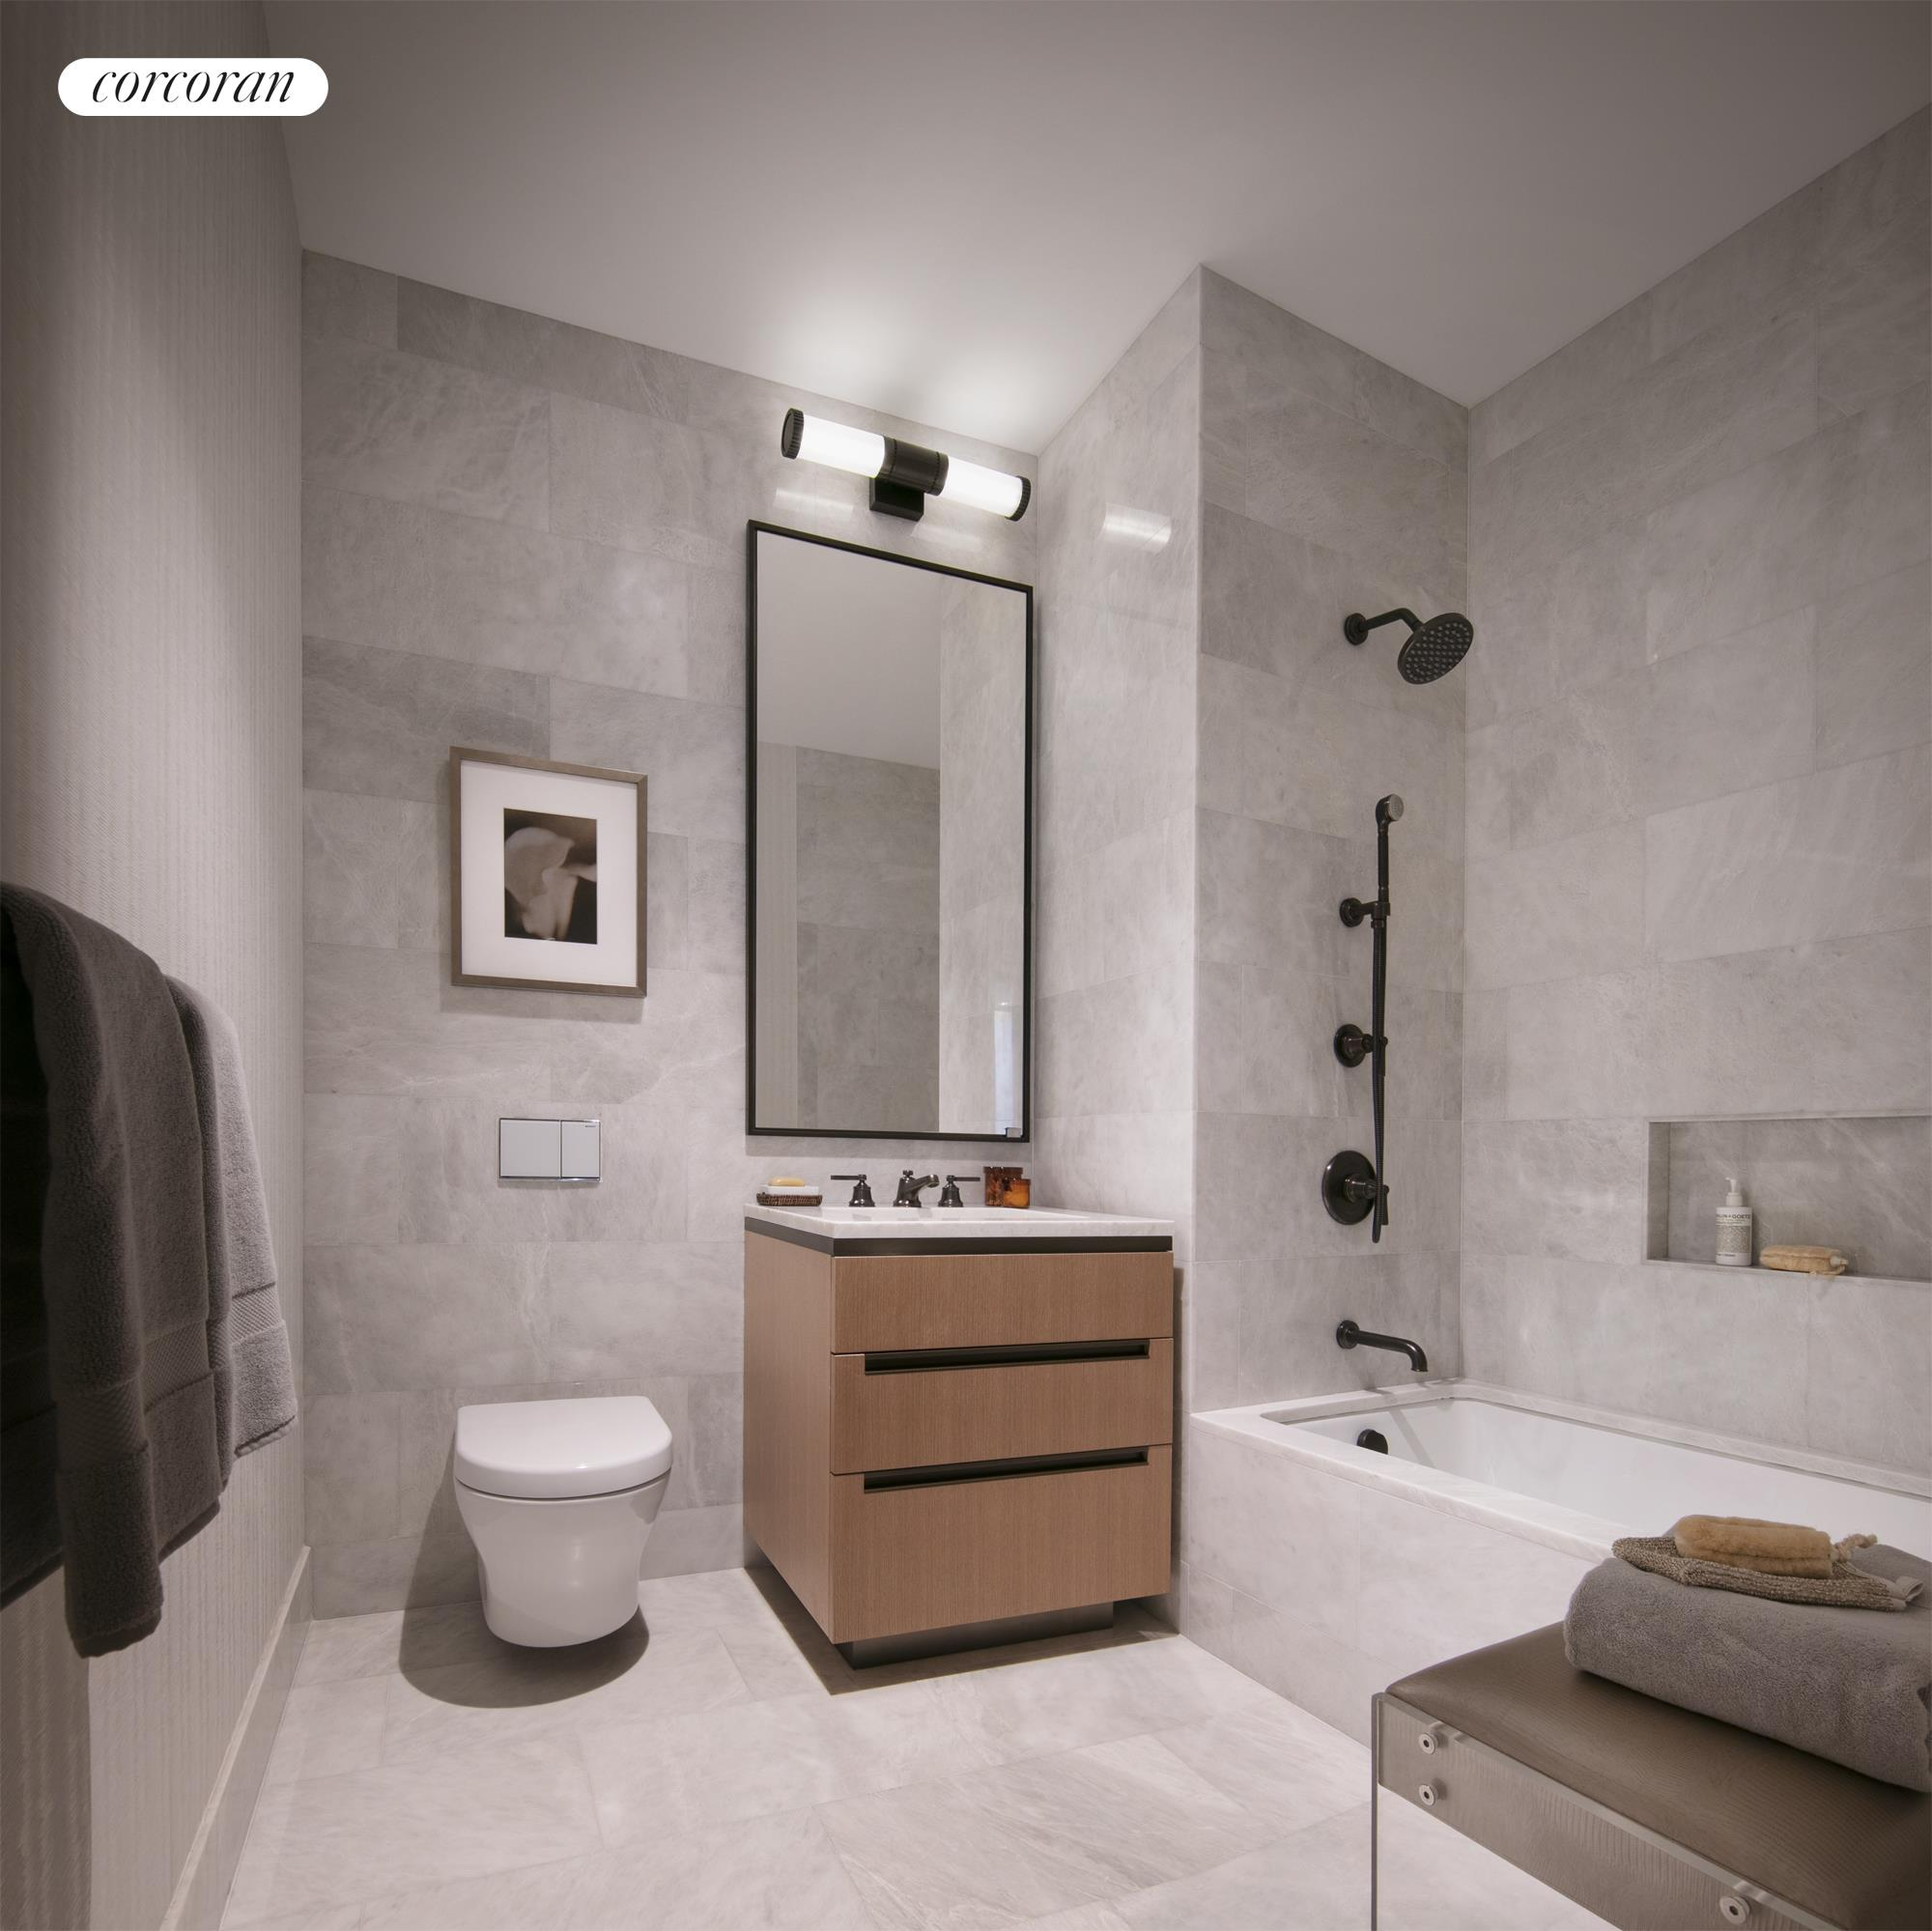 Apartment for sale at 515 West 18th Street, Apt 1101